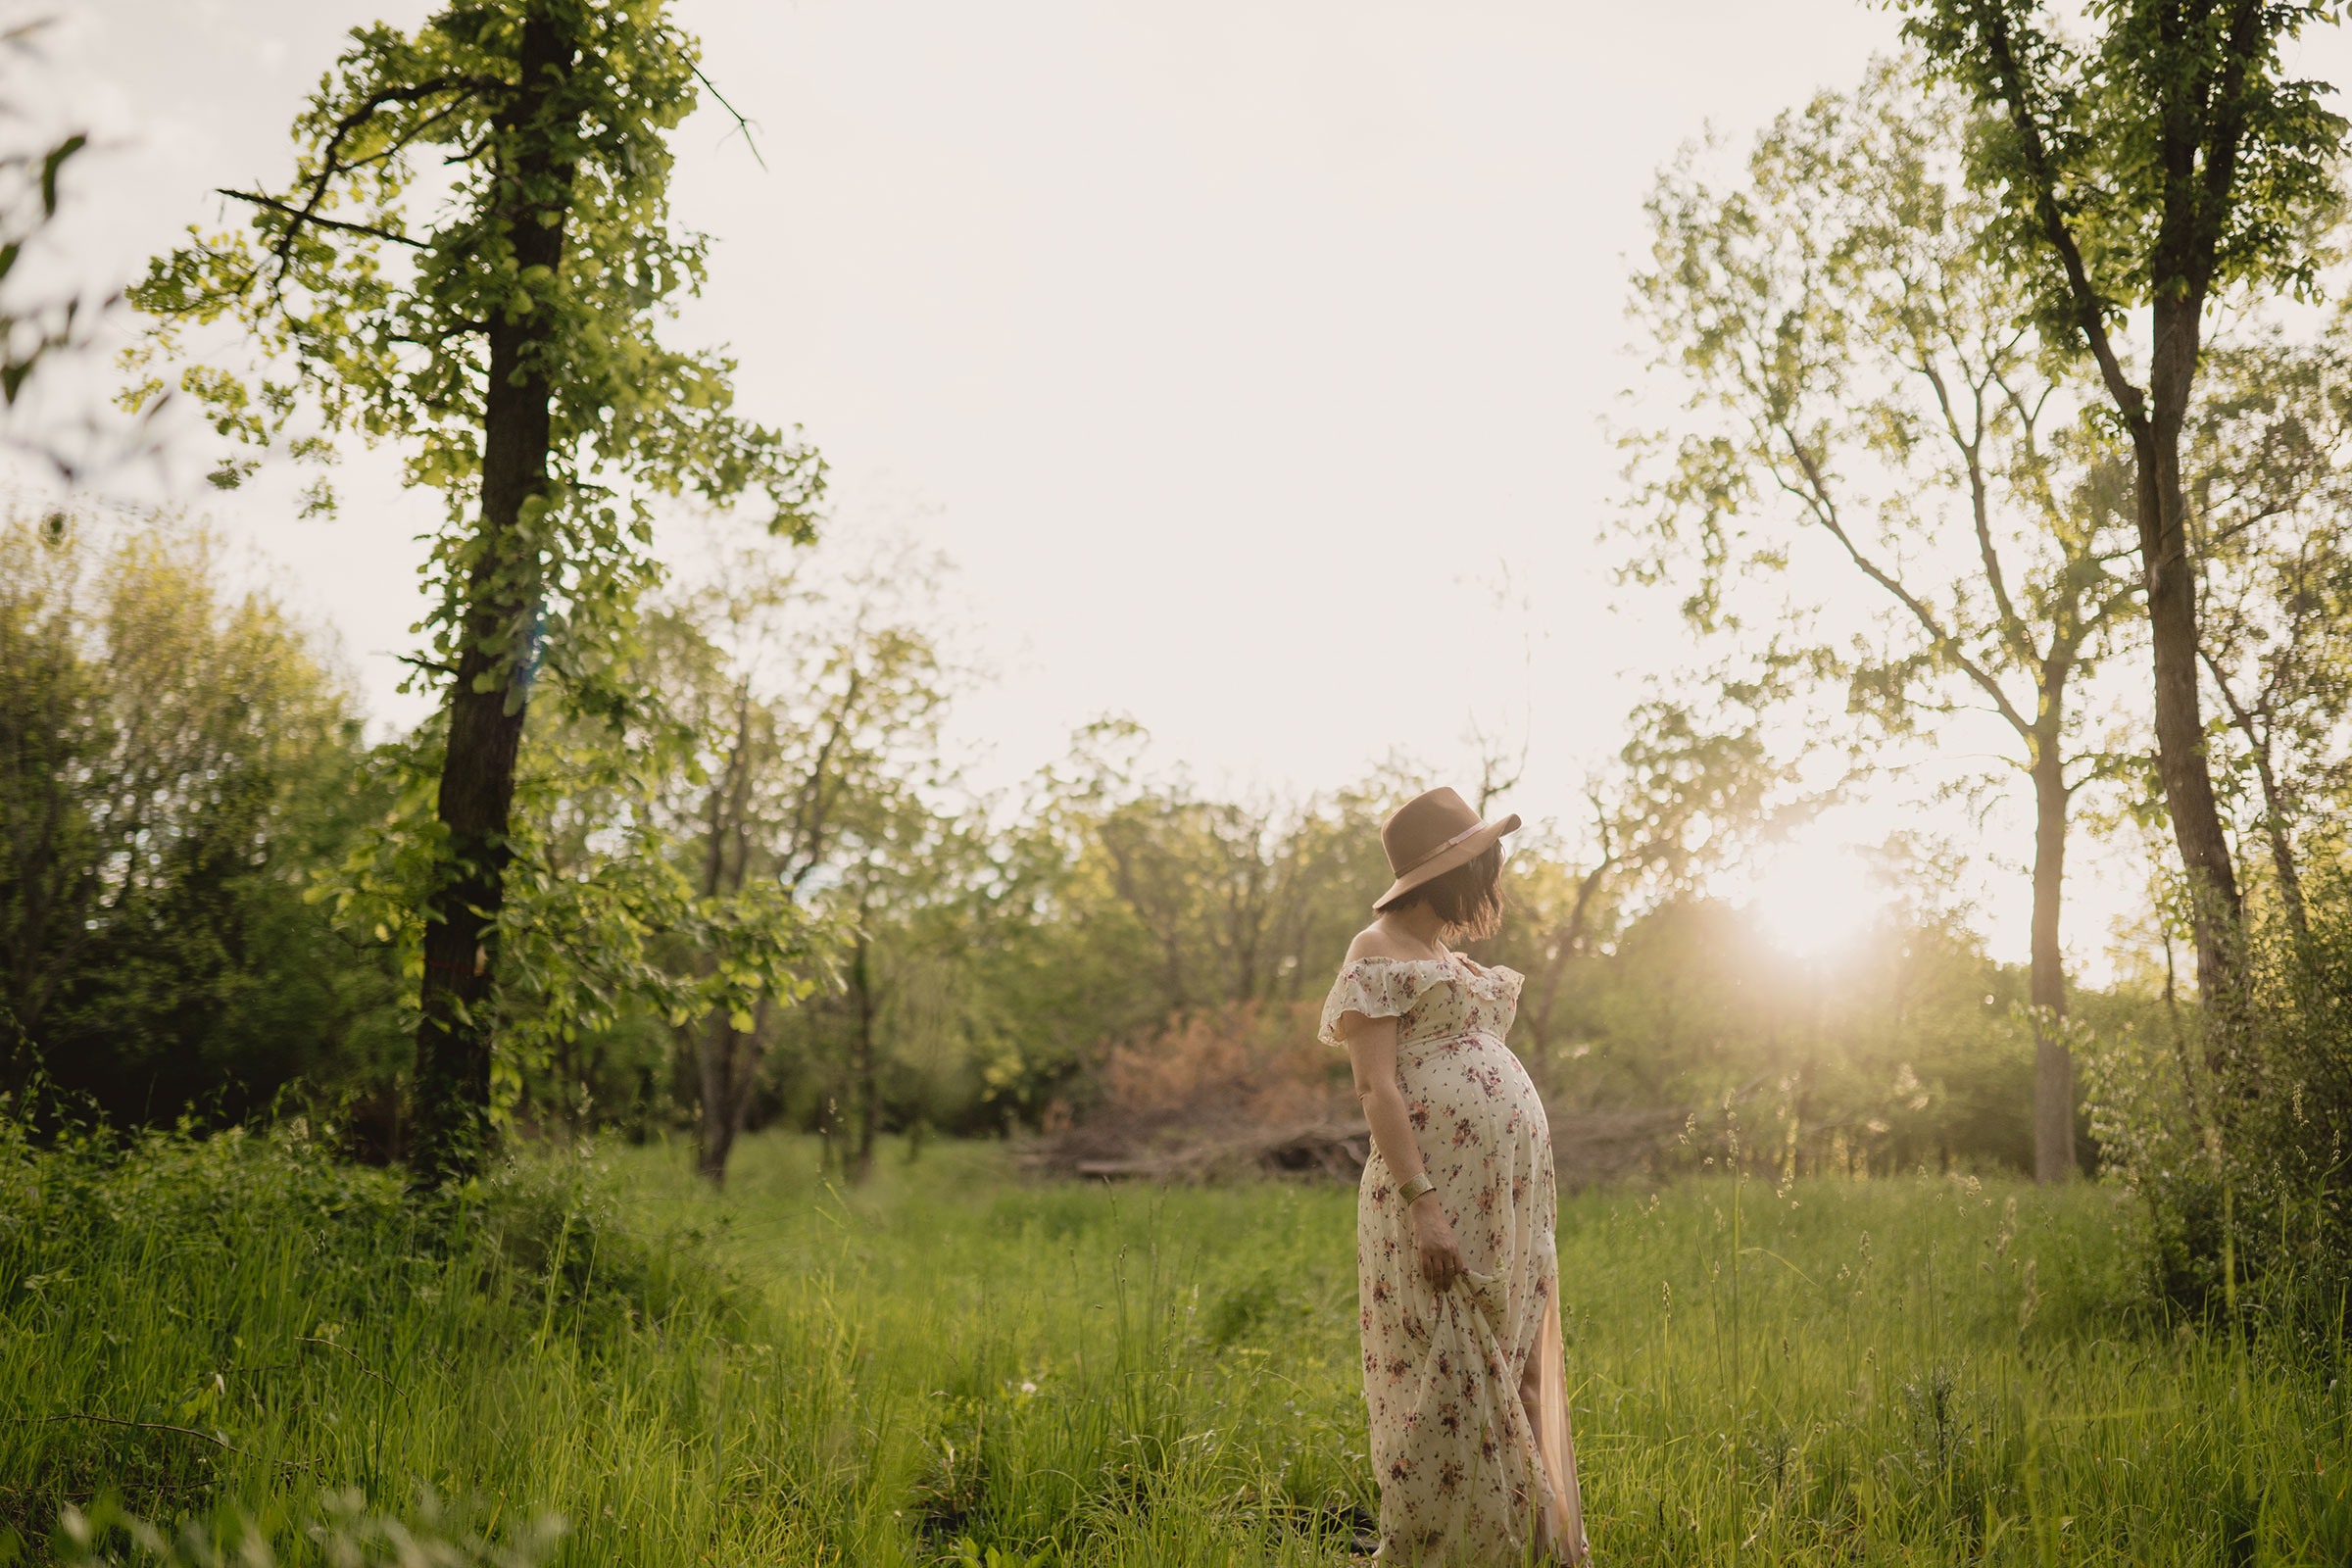 pregnant-woman-standing-in-tall-grass-field-maternity-desmoines-iowa-raelyn-ramey-photography.jpg